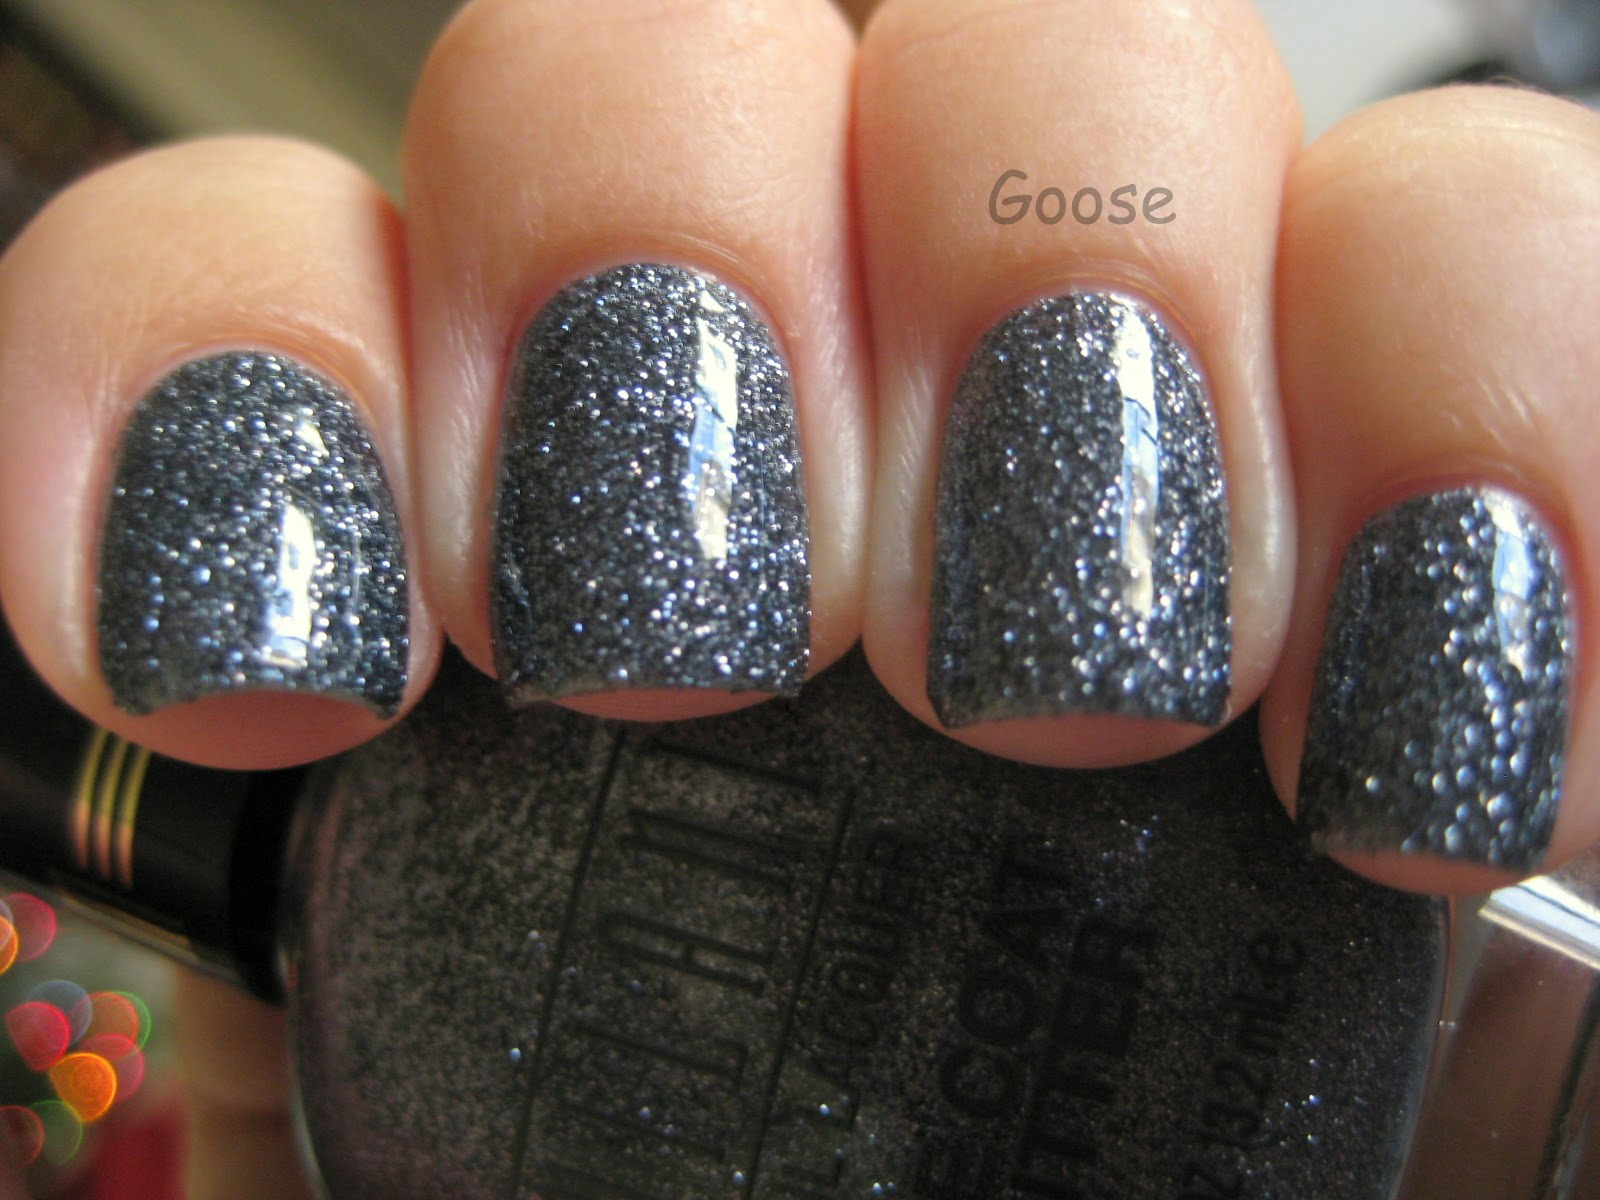 Goose\'s Glitter: Milani Jewel FX Swatches and Review